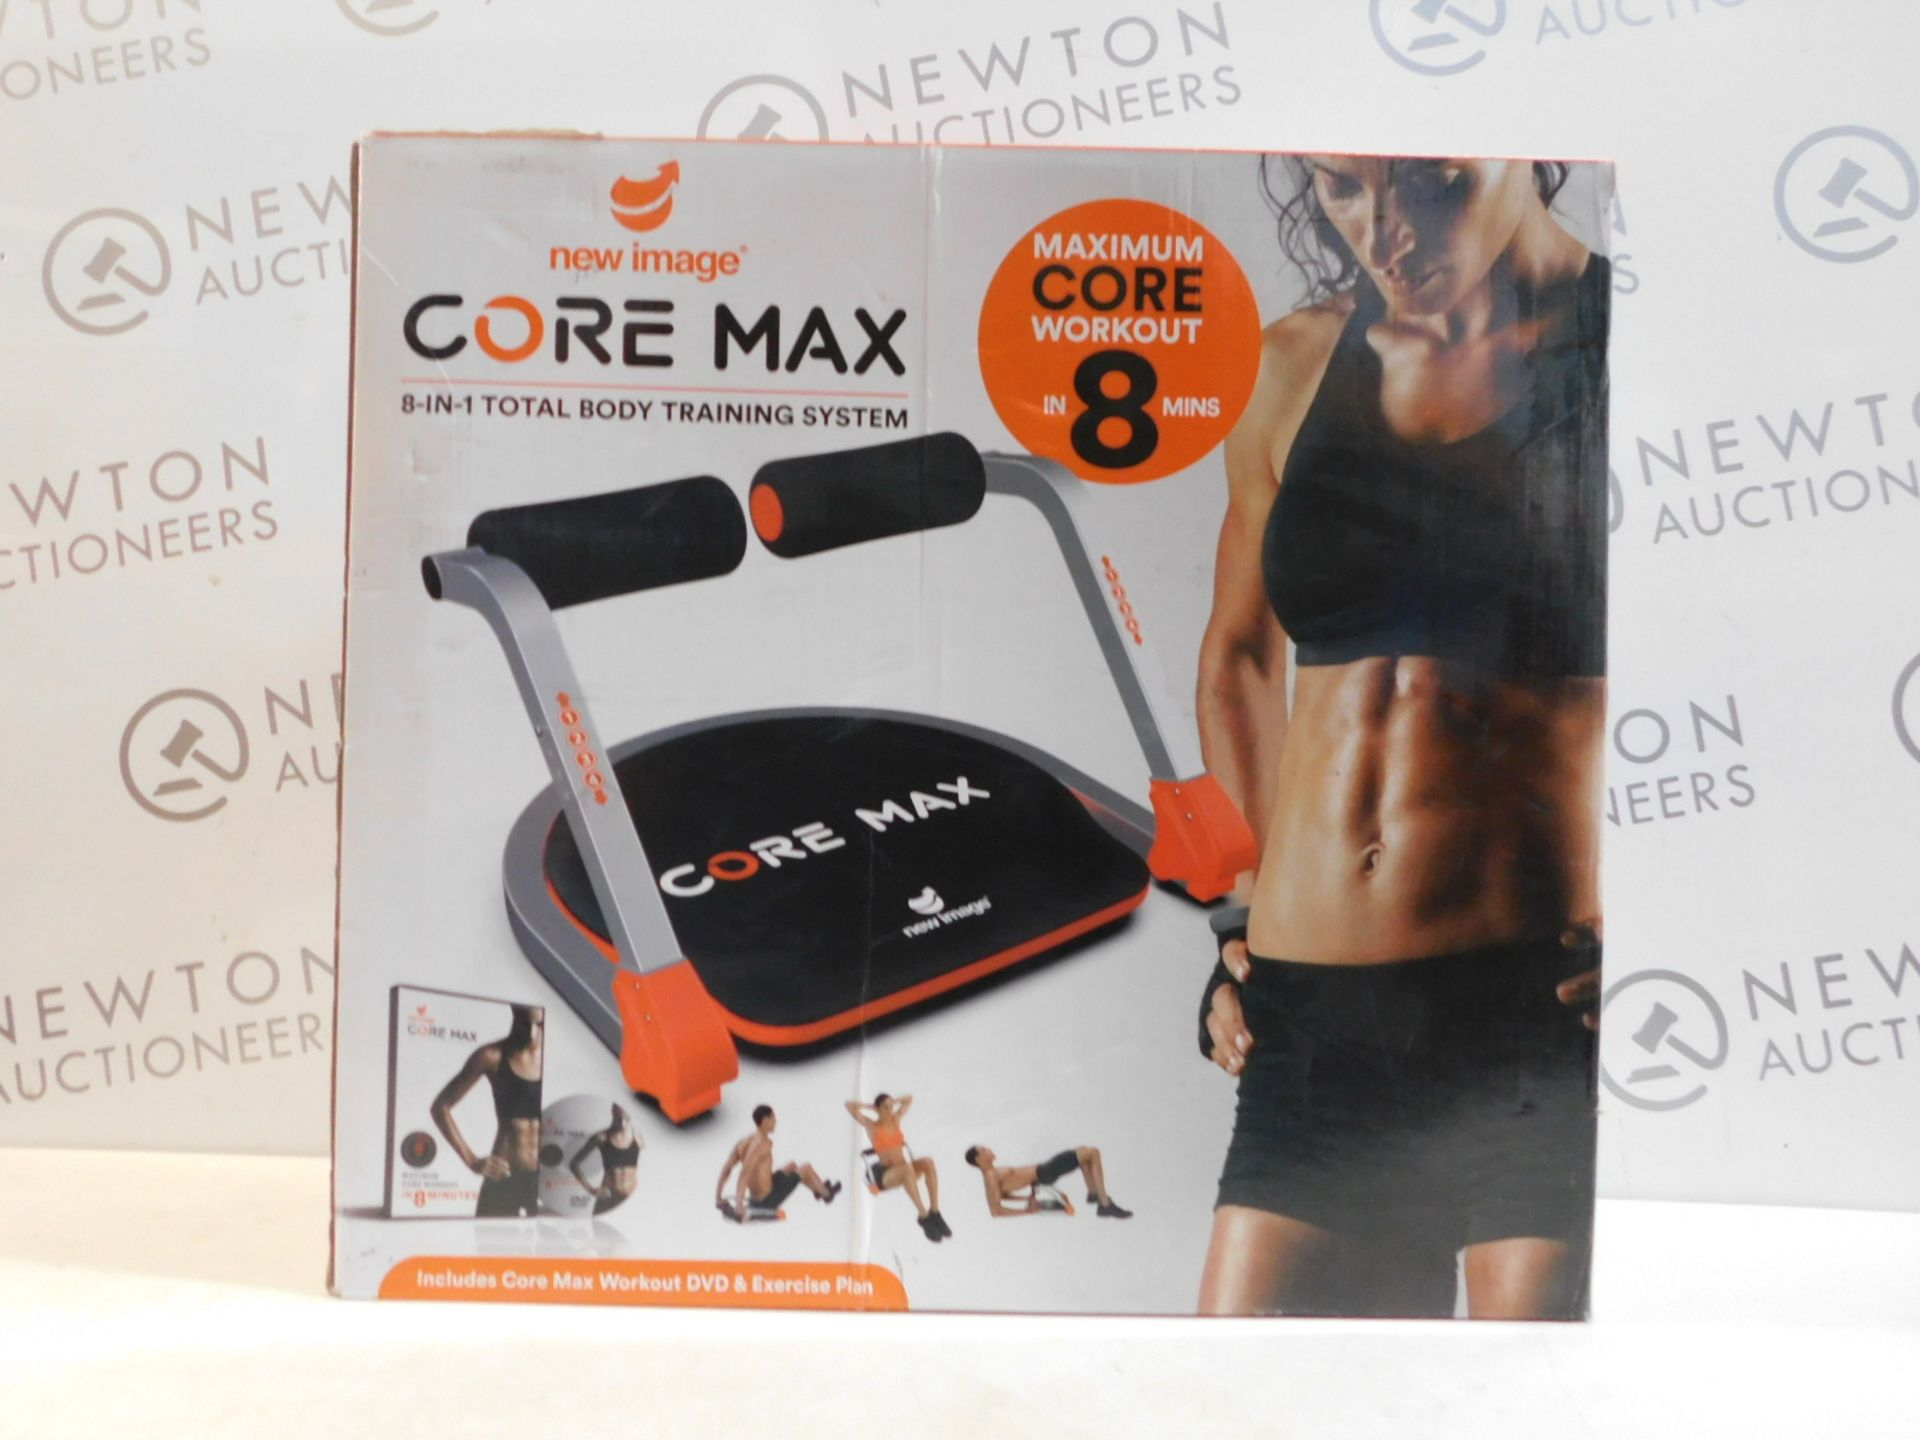 Lot 527 - 1 BOXED IMAGE CORE MAX 8 IN 1 TOTAL BODY TRAINING SYSTEM RRP £79.99